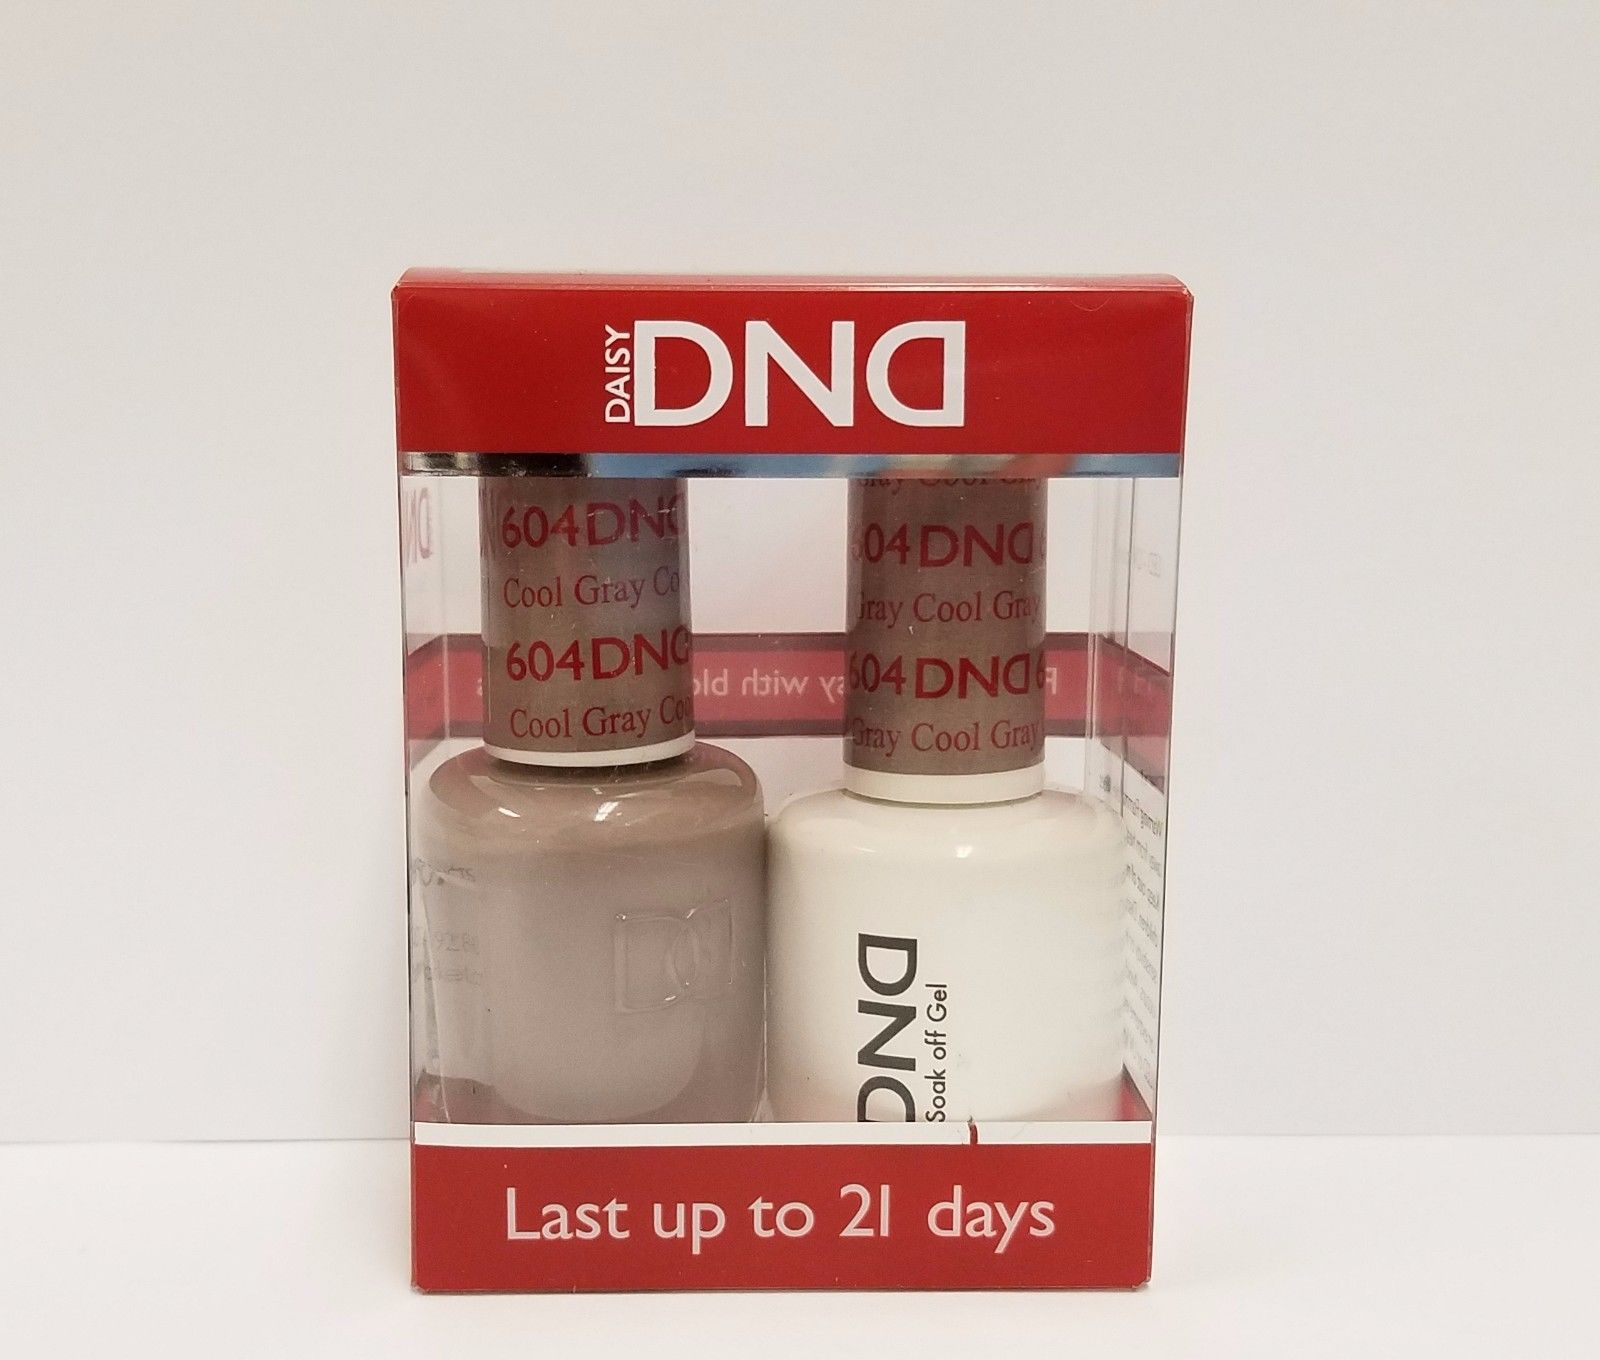 Dnd Duo Gel Matching Nail Polish Set 587 To 621 Choose Your Colo Four Seasons Beauty